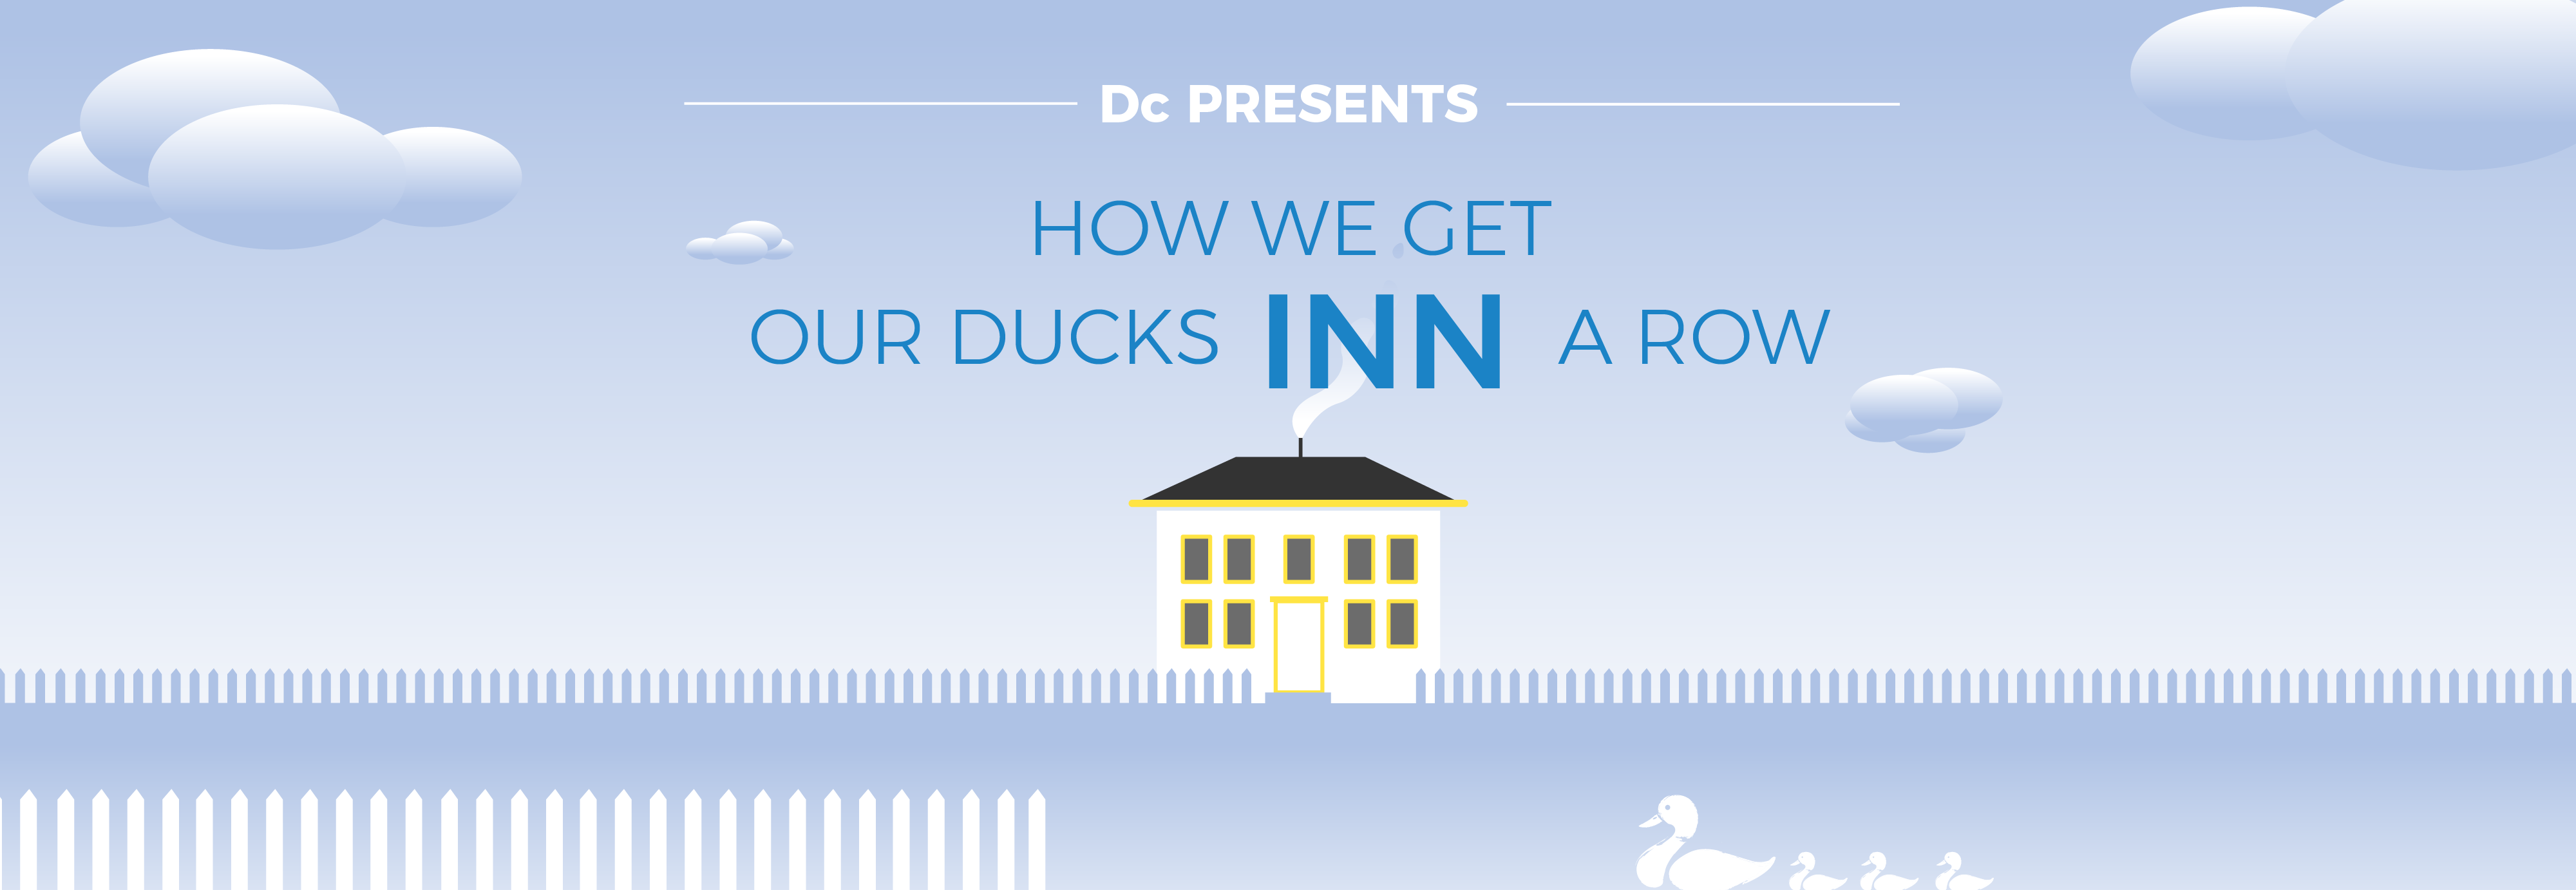 Dc Presents: How We Get Our Ducks Inn a Row